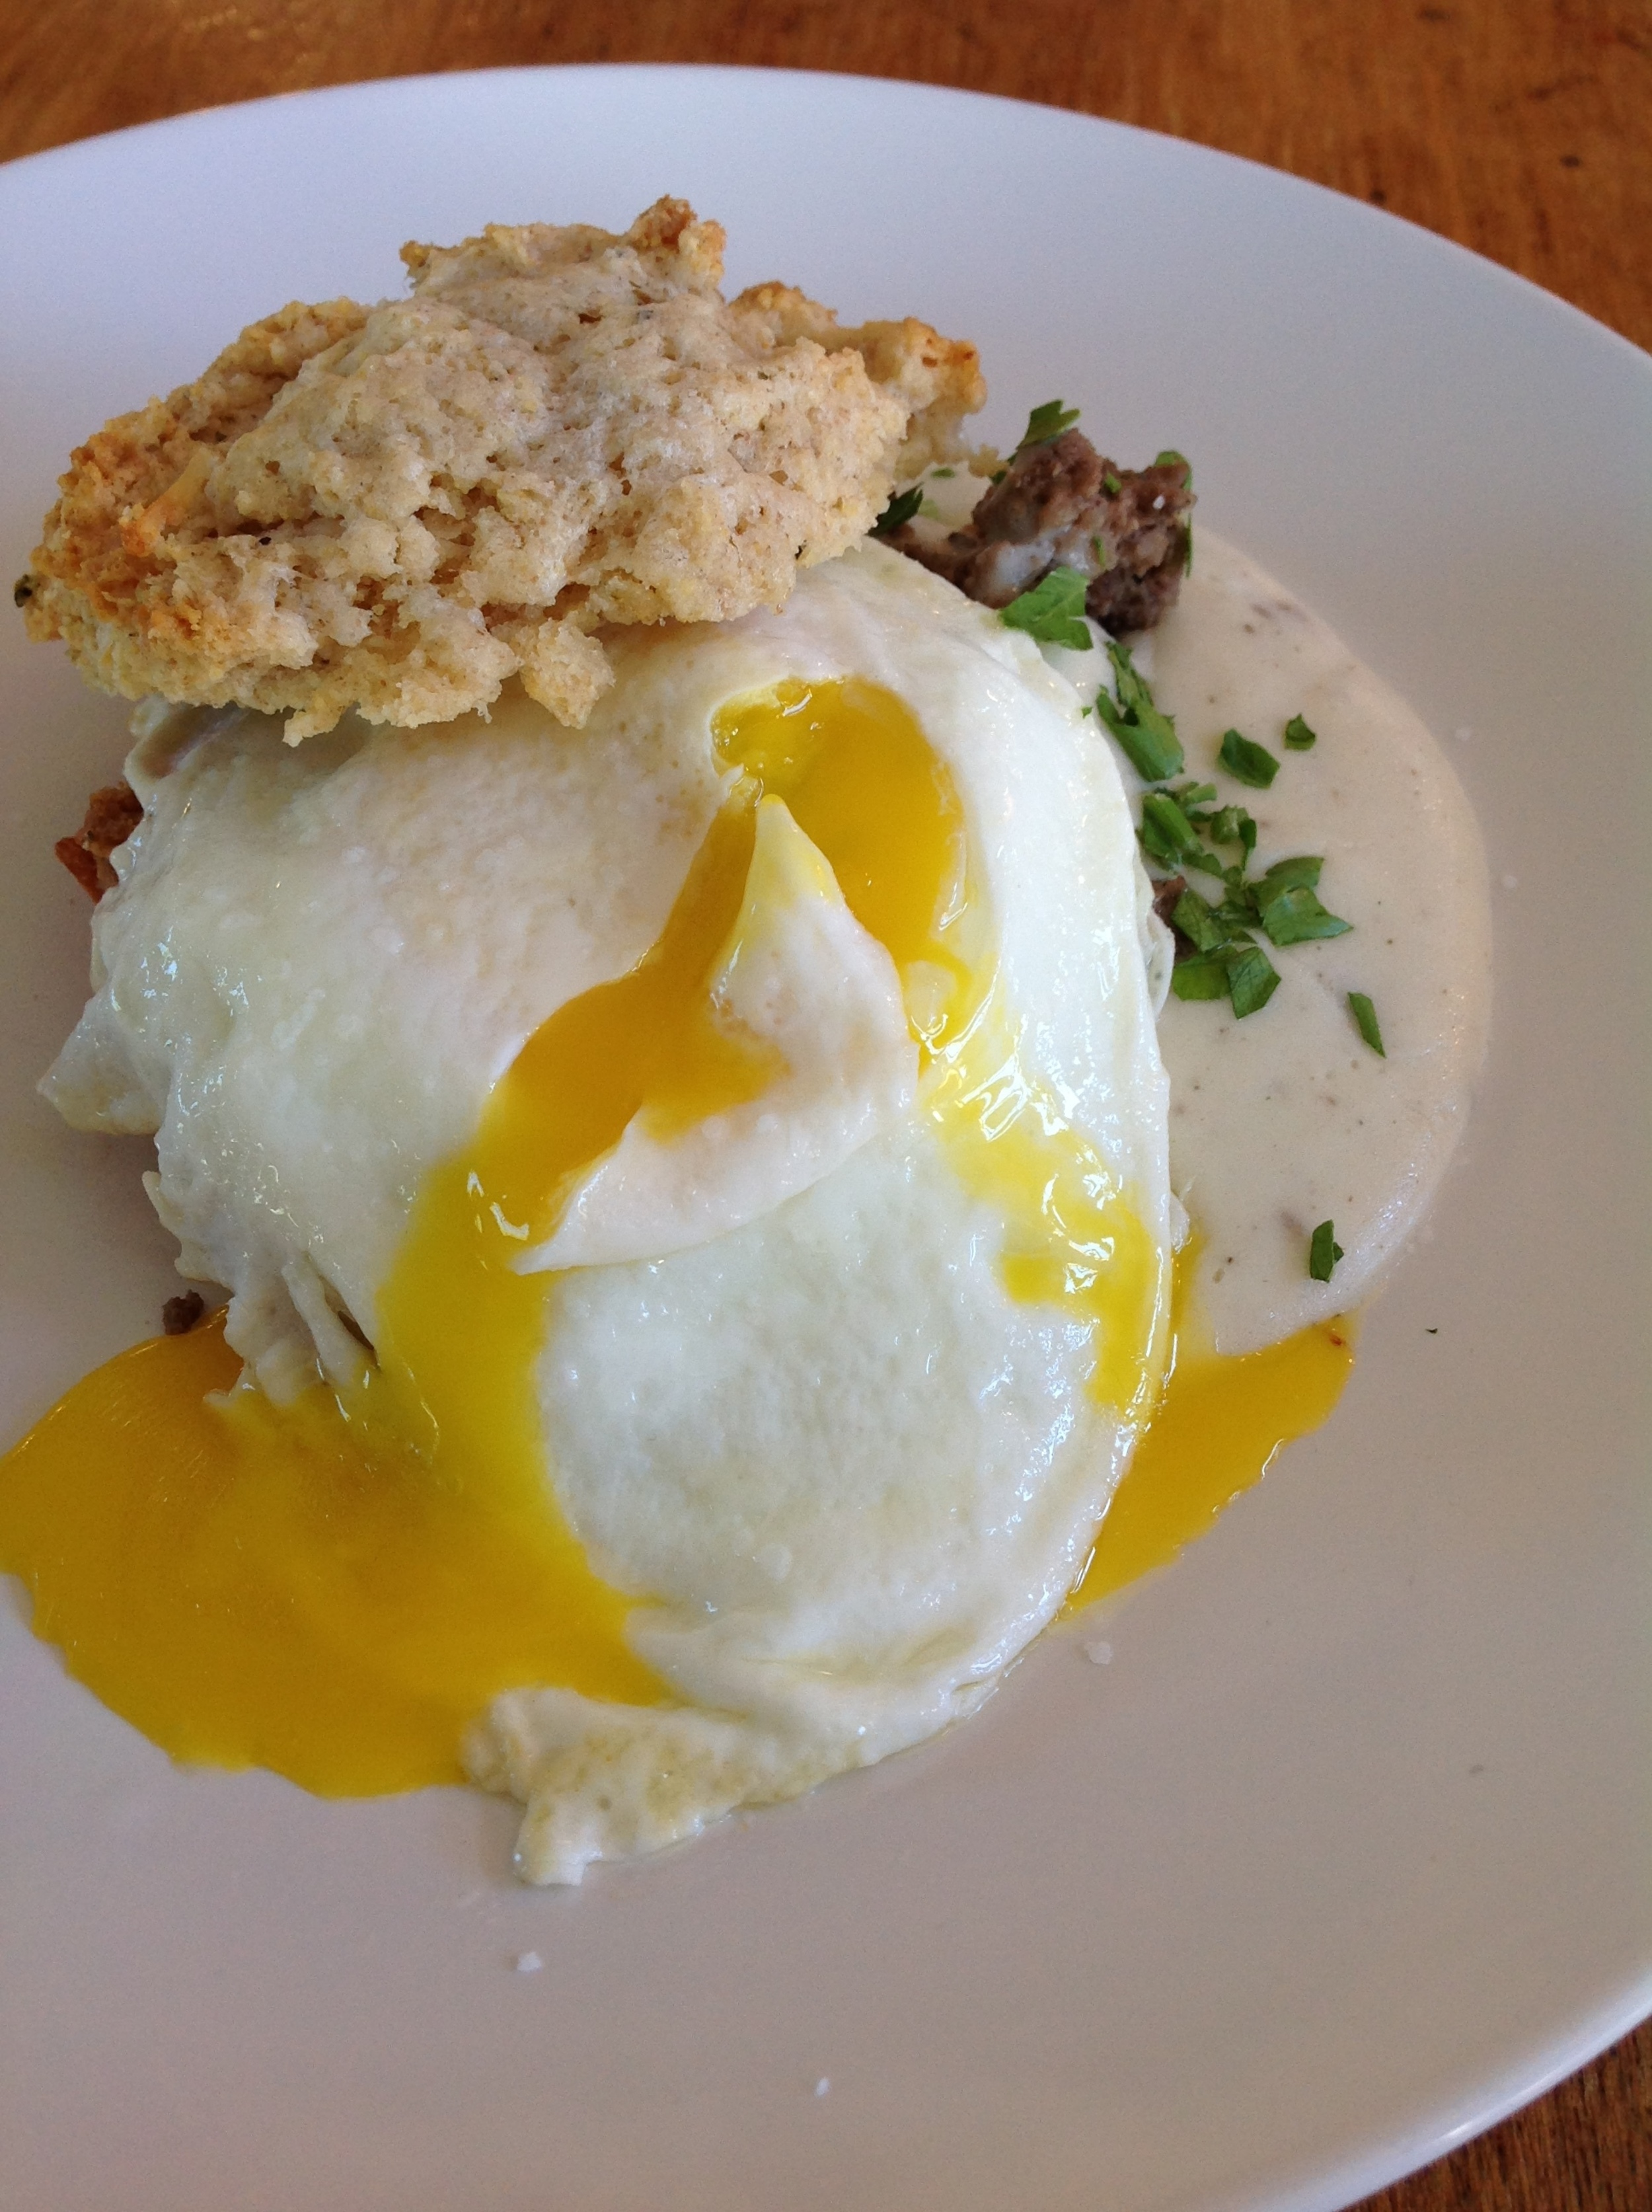 Scones and Gravy with a runny egg